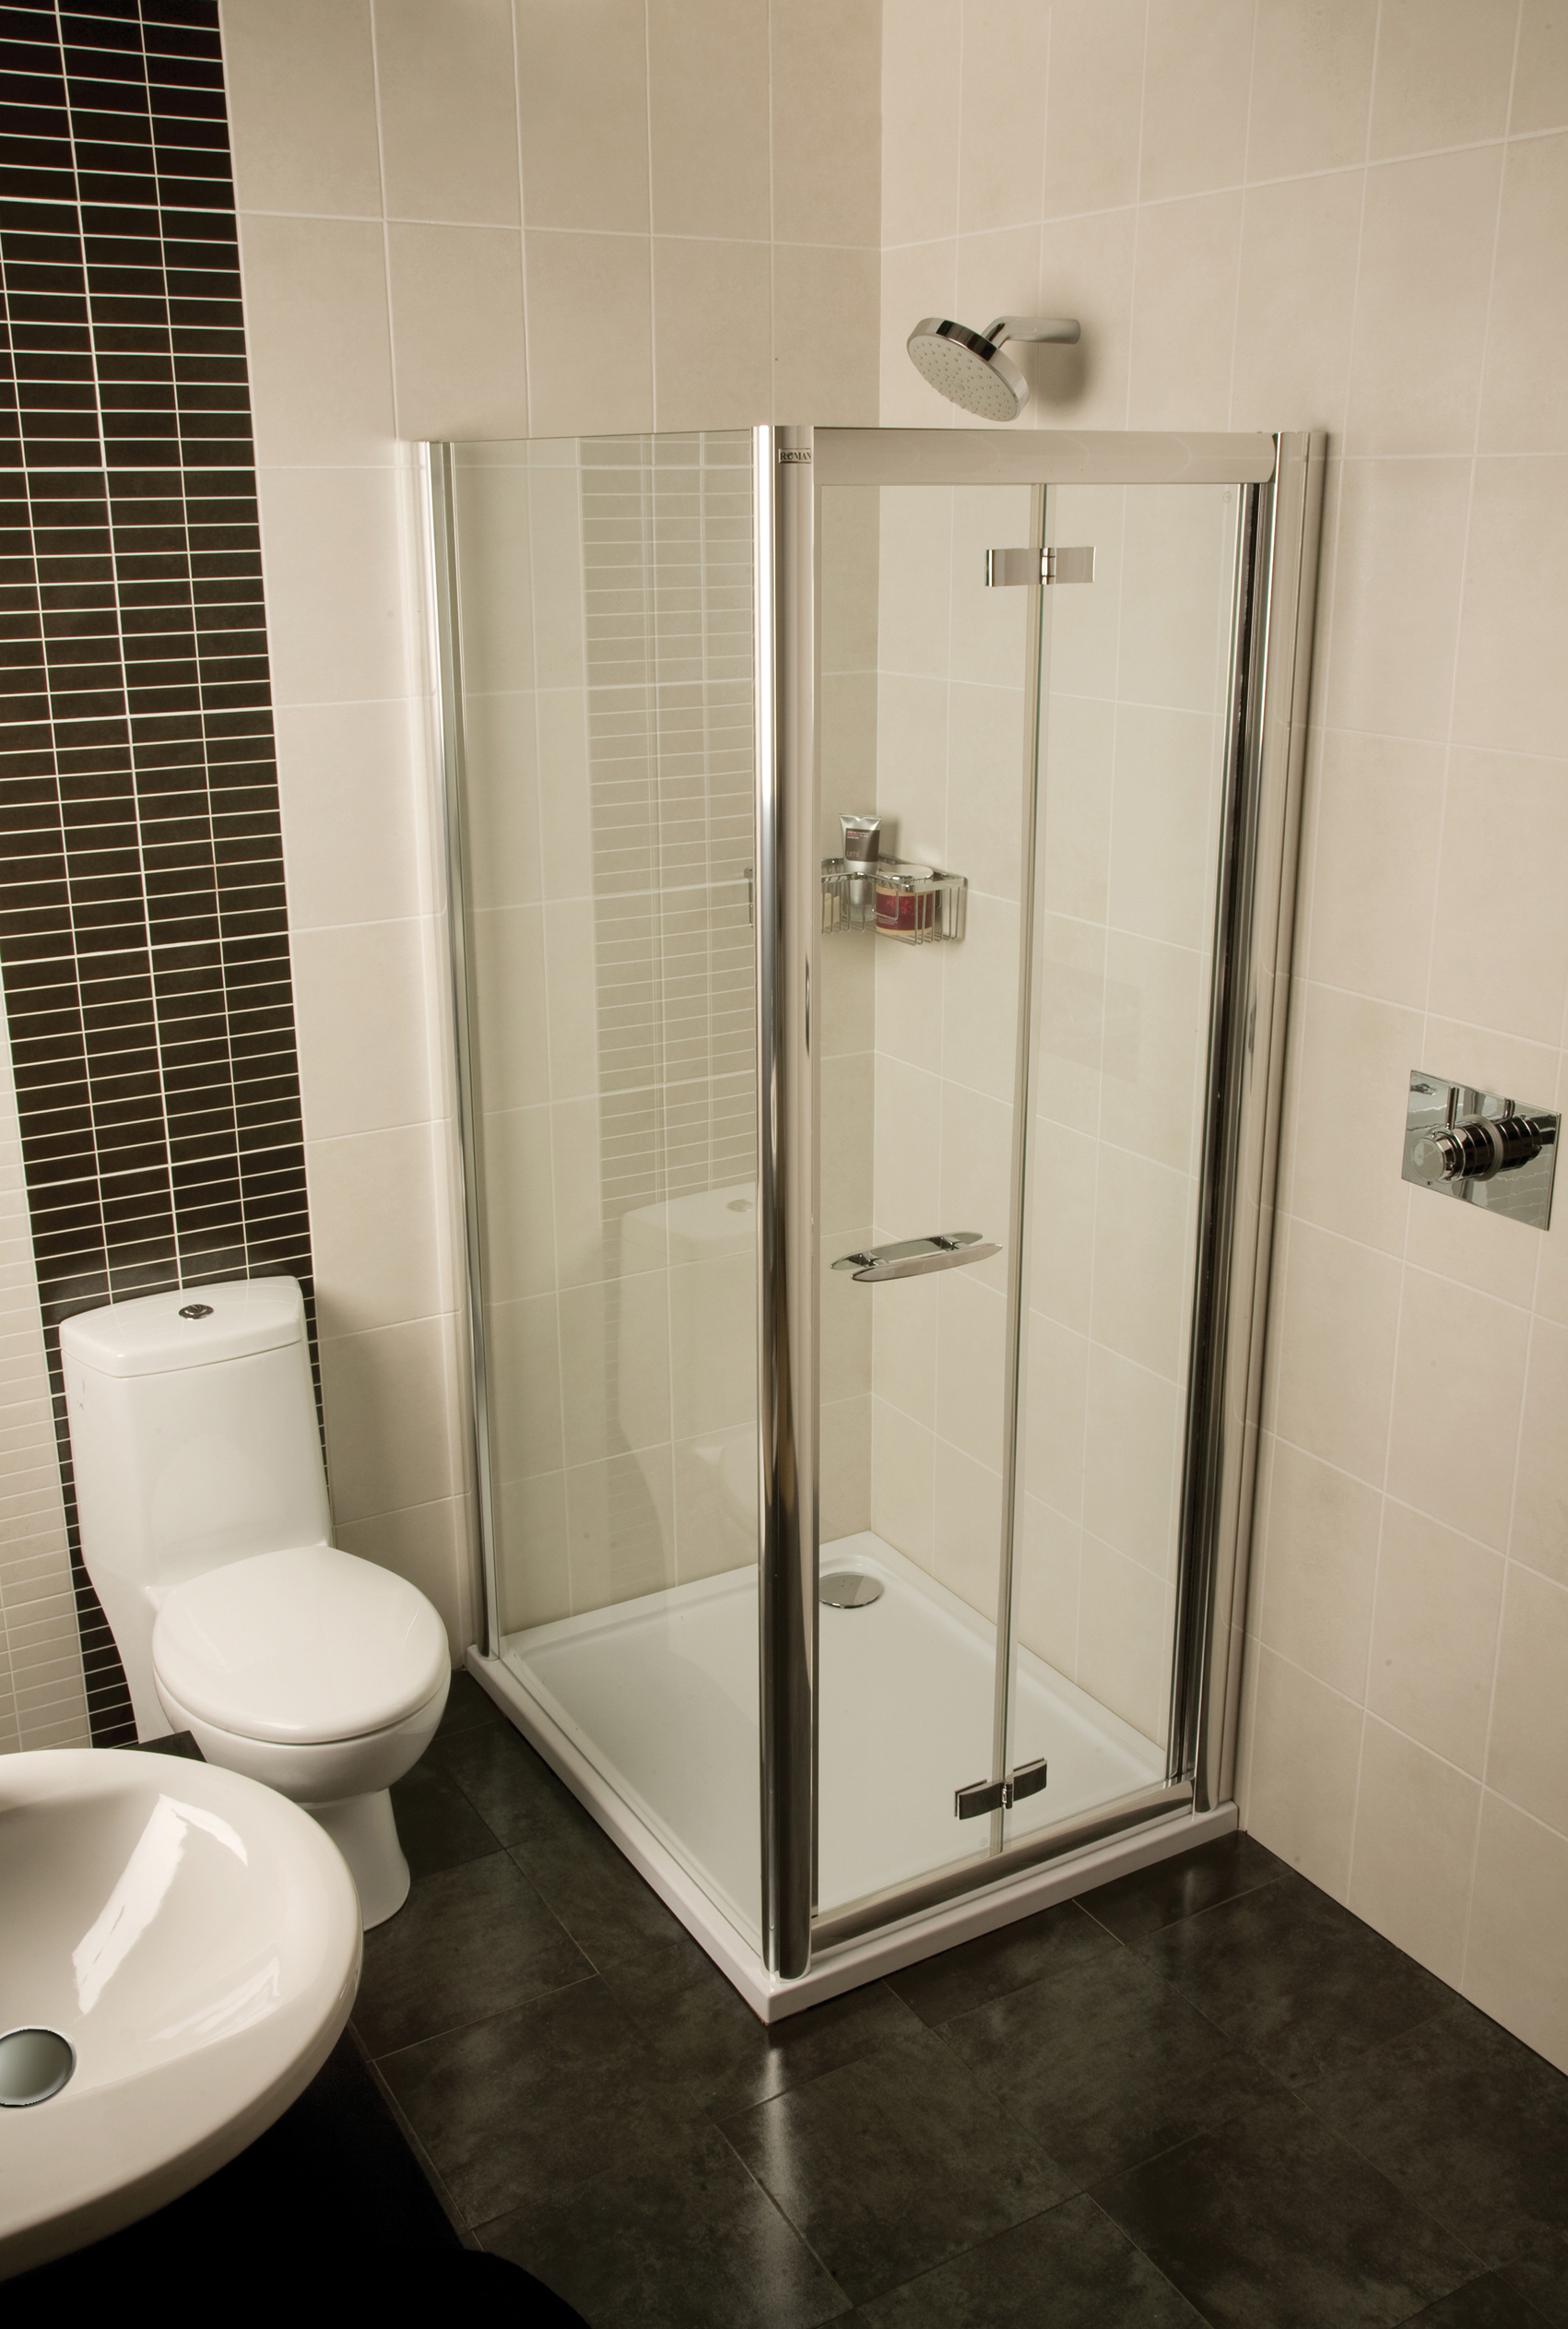 Space saving shower solutions for small bathroom | Roman Showers\' Blog